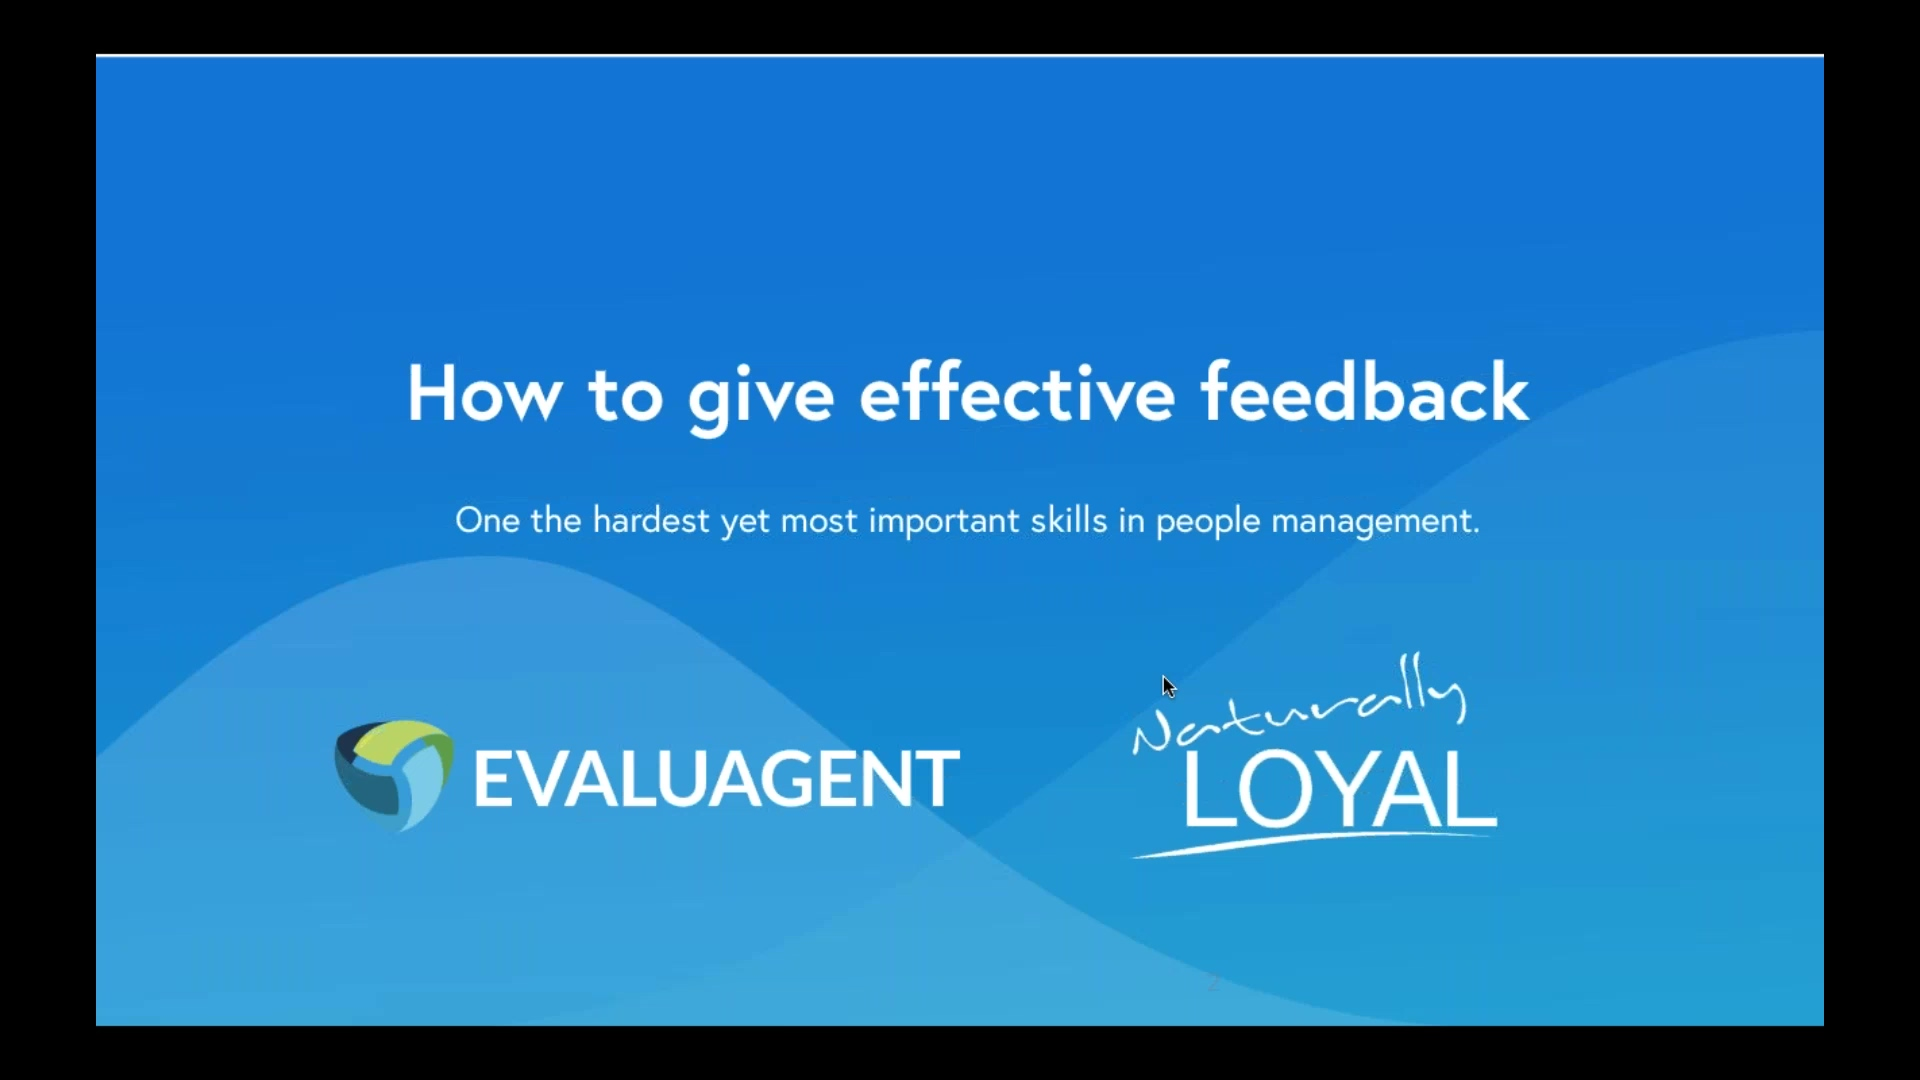 Webinar Wednesdays - How to give effective feedback with Caroline Cooper